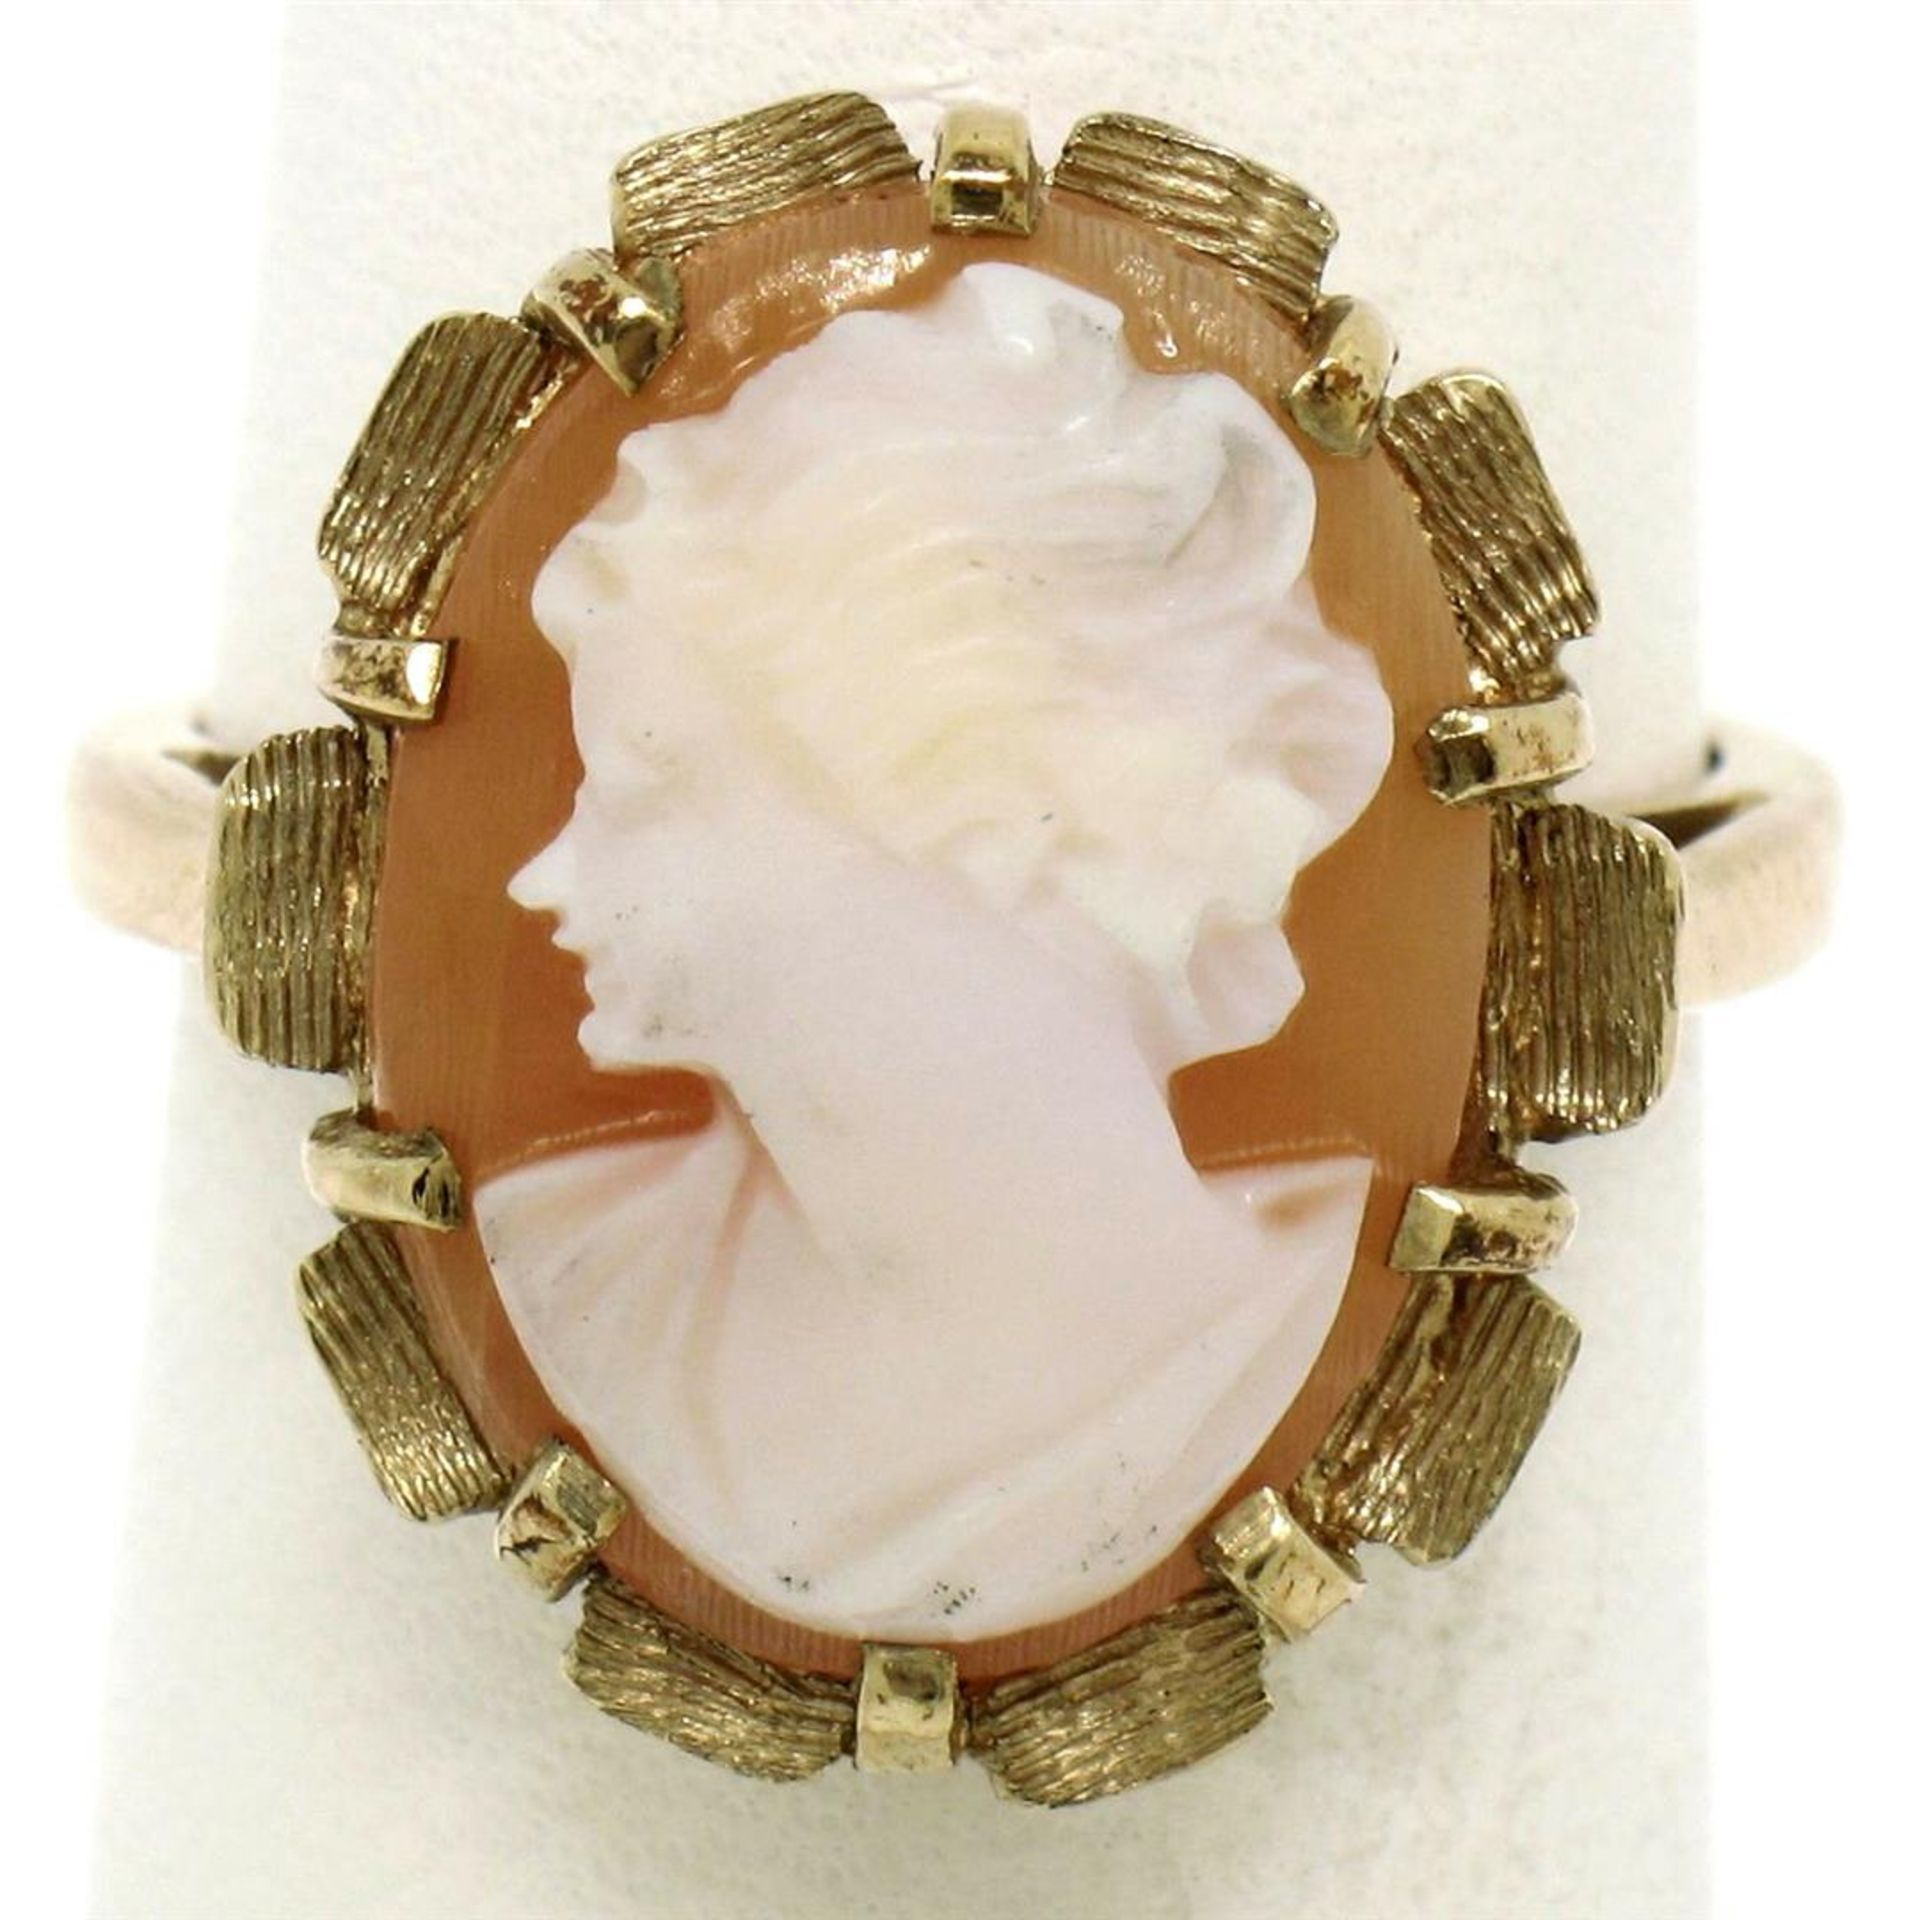 Vintage 14k Yellow Gold Oval Carved Shell Cameo Ring w/ Brushed Finish Frame - Image 3 of 8